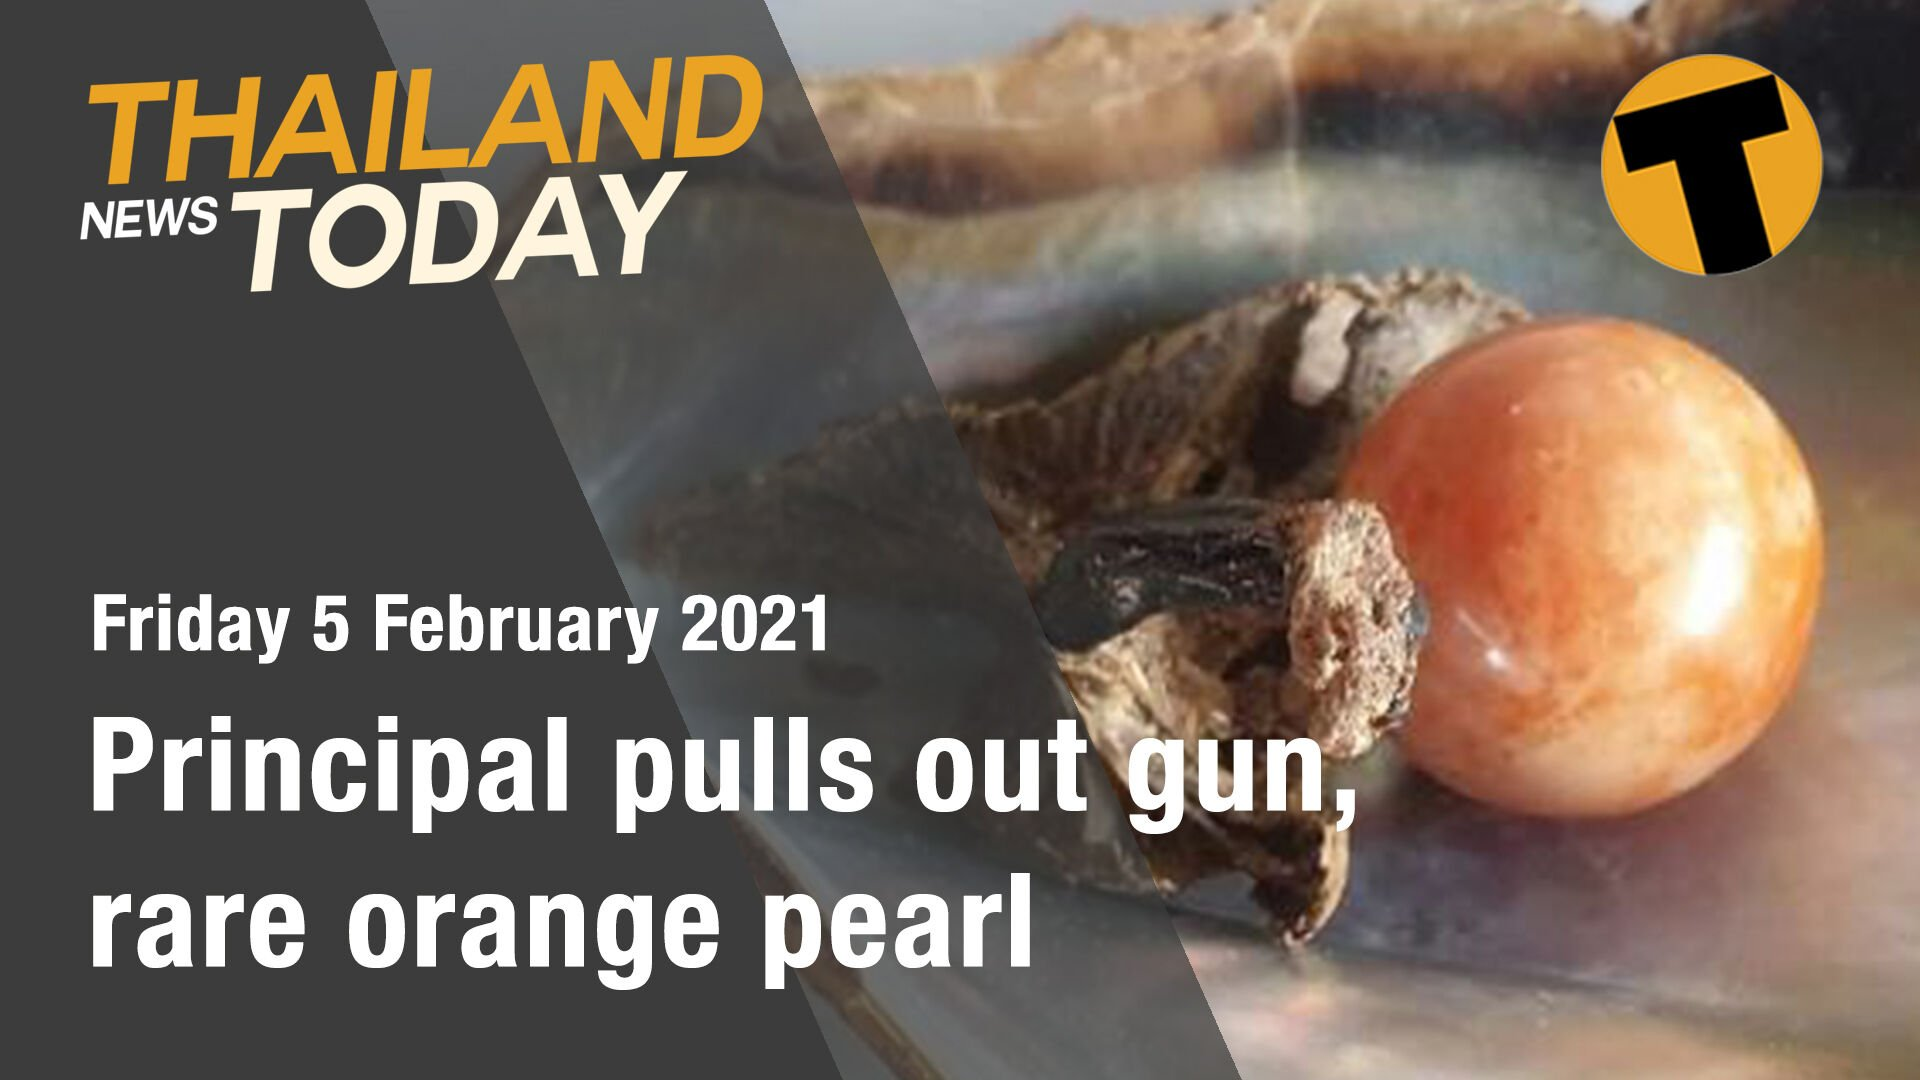 Thailand News Today | Principal pulls out gun, rare orange pearl | February 5 | The Thaiger